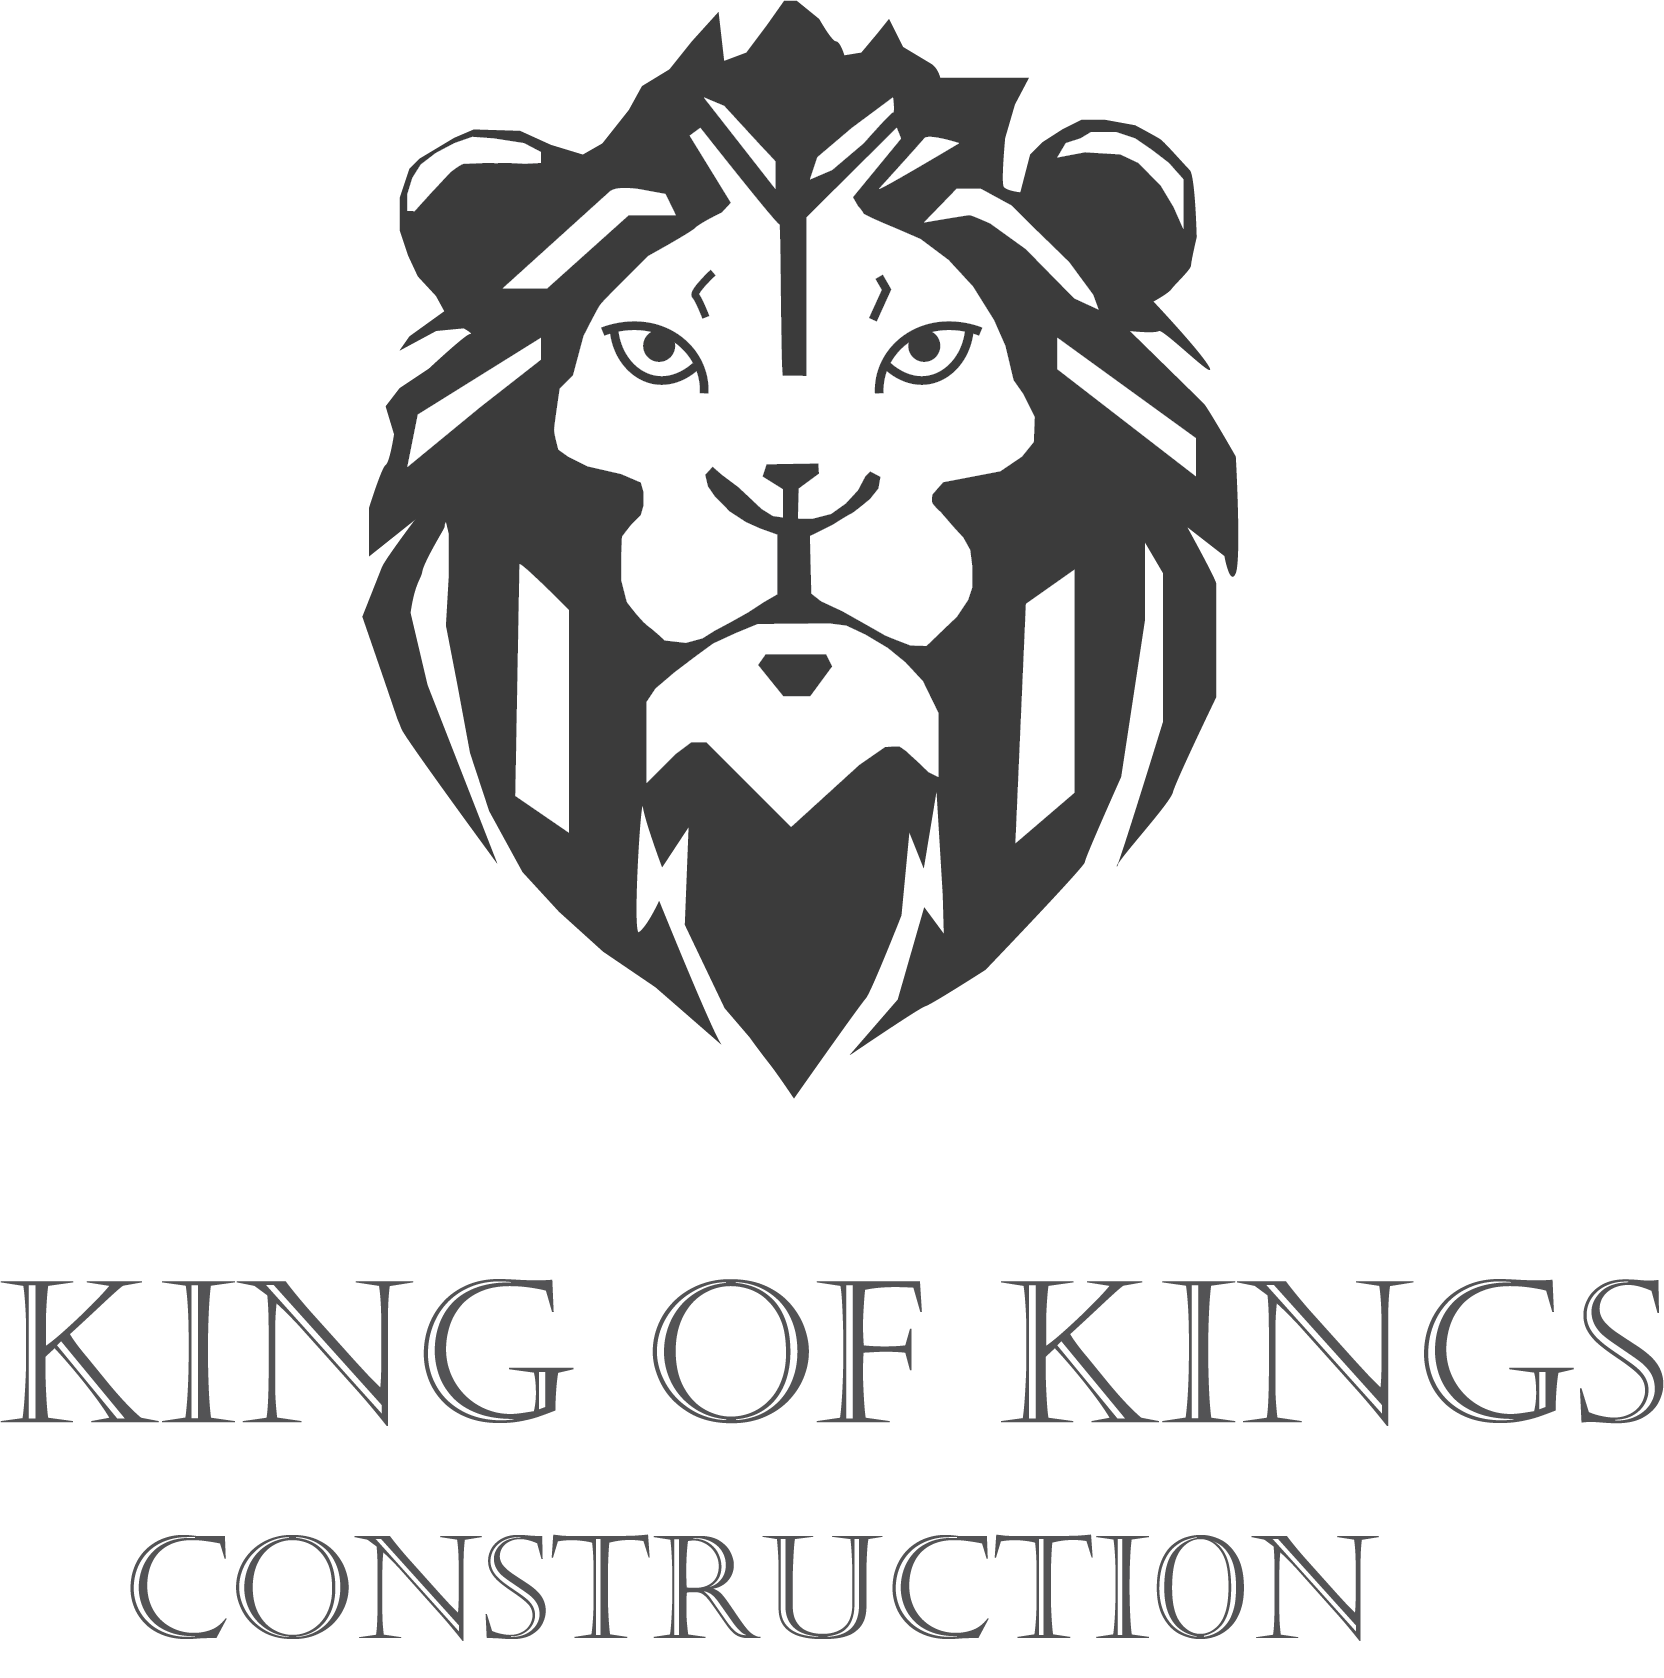 King of Kings Construction Co.